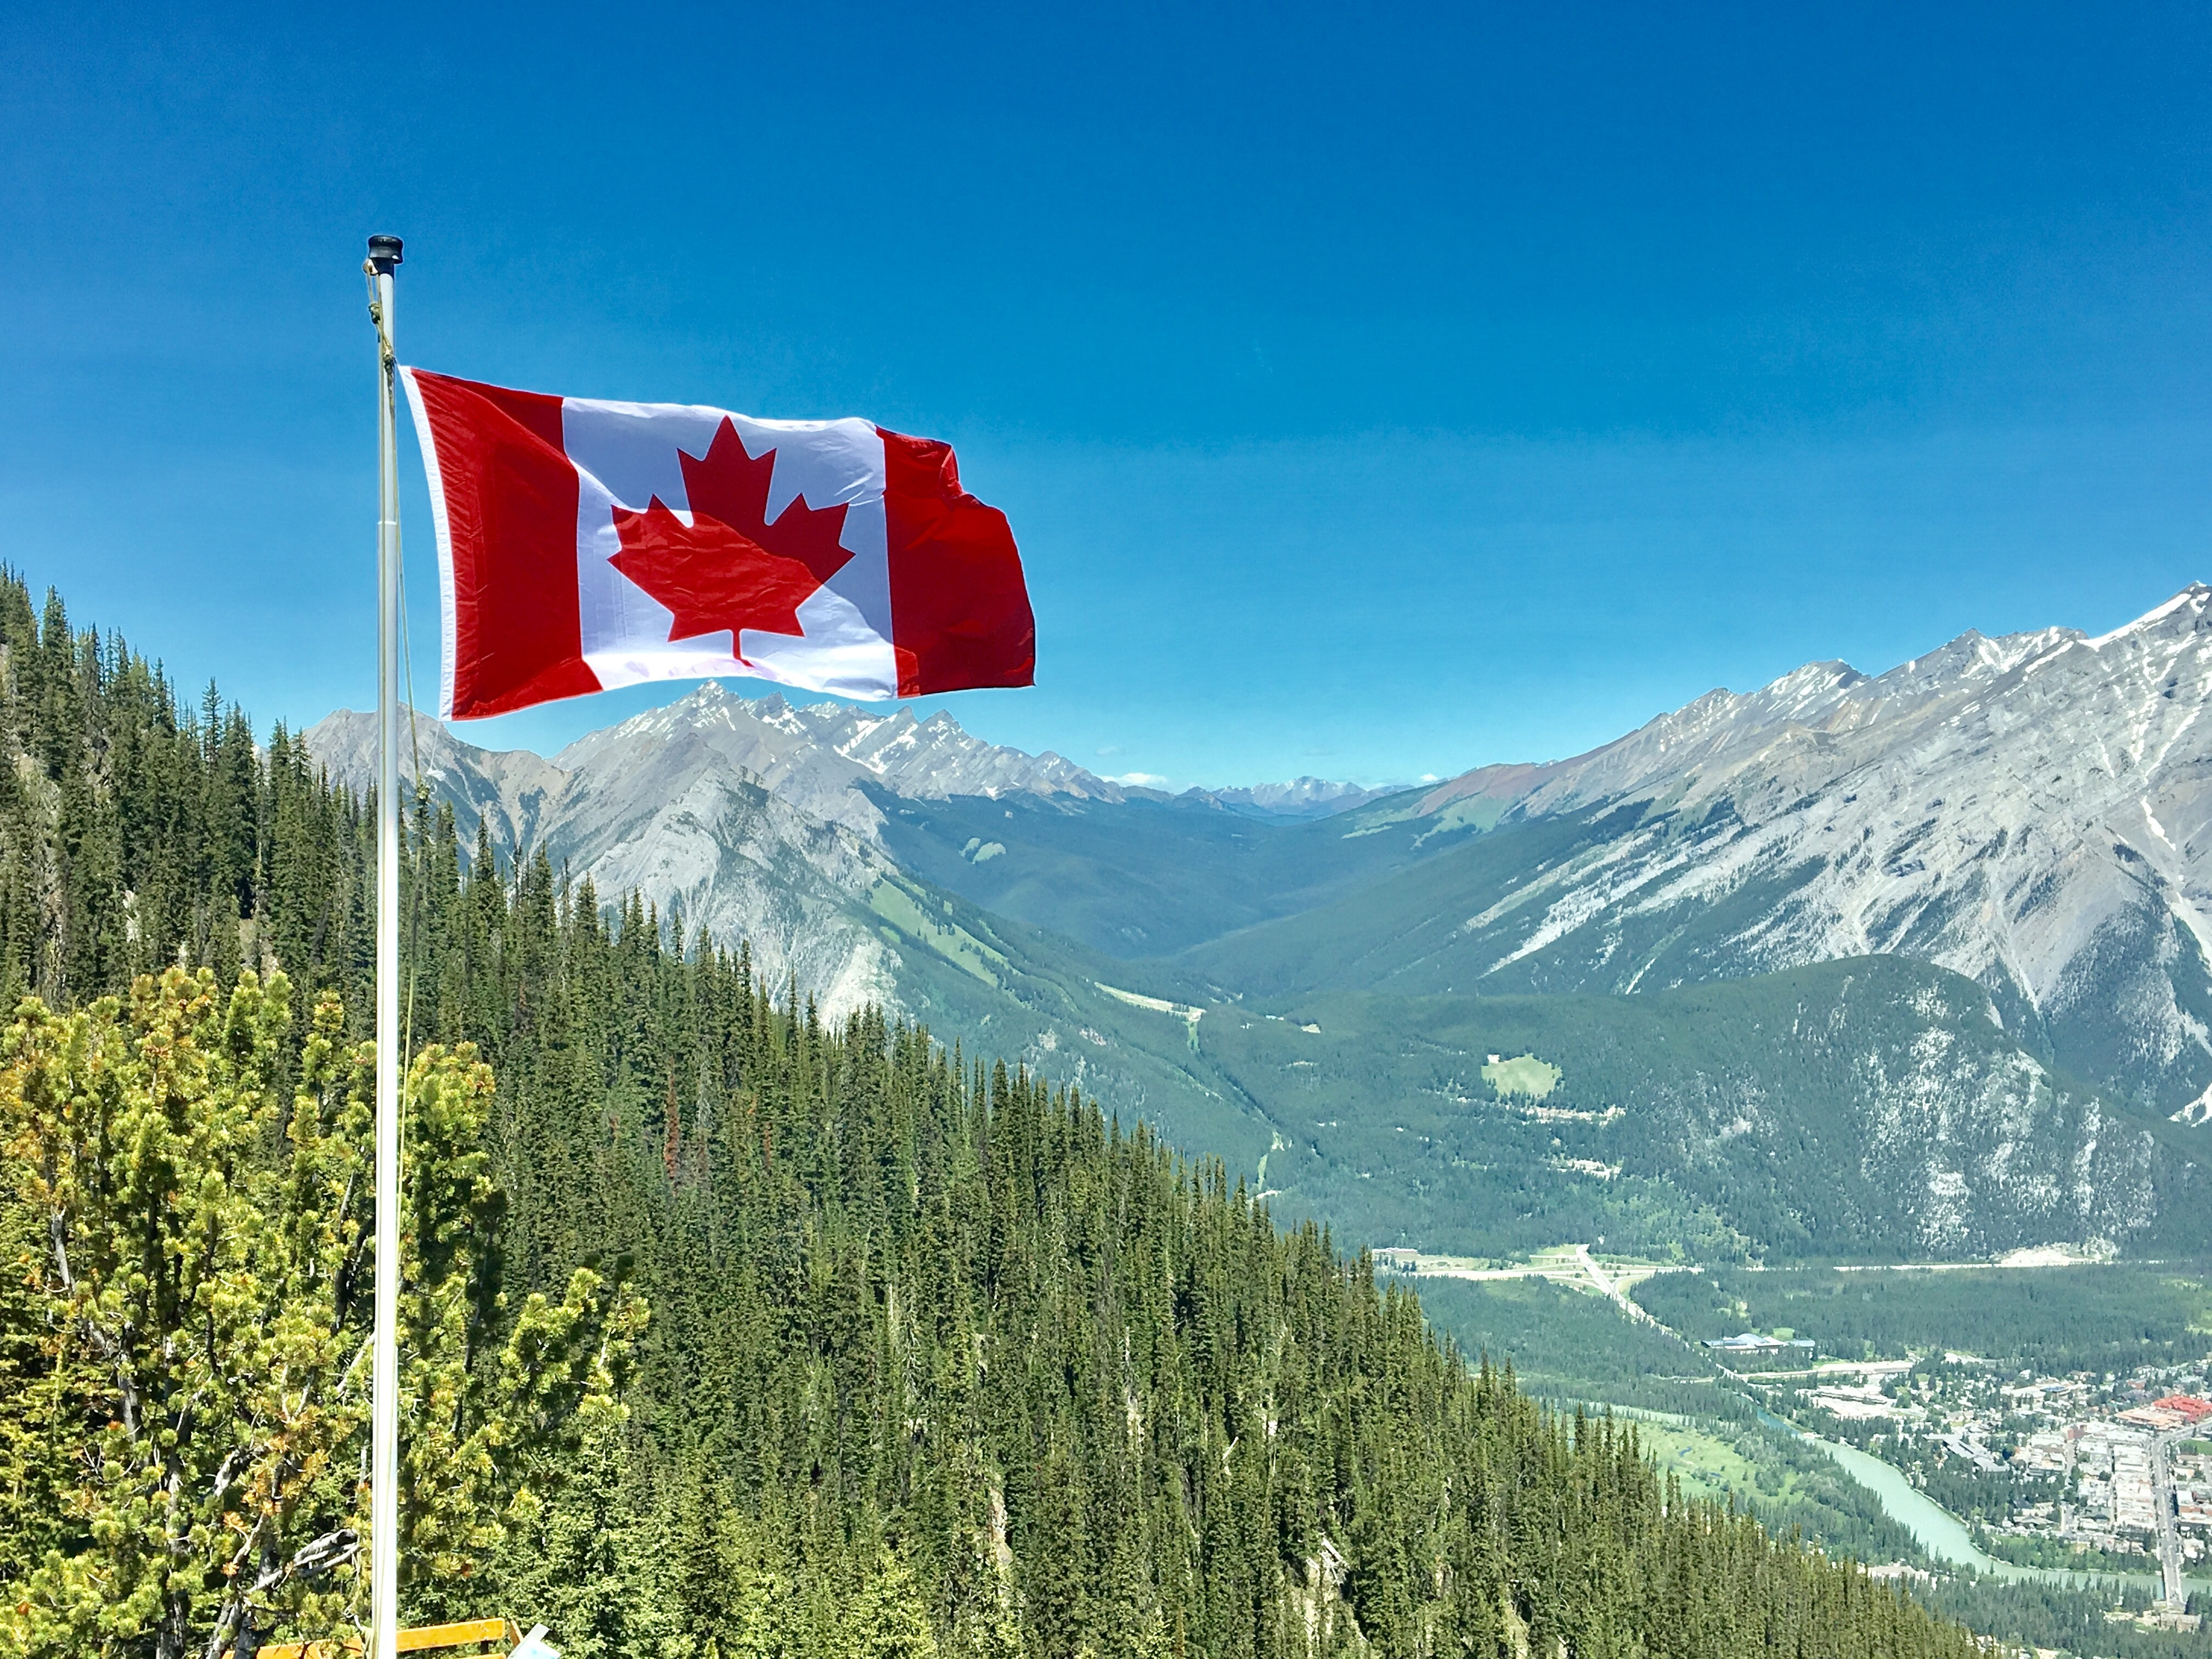 Canadian flag hoisted high in on the hills energy.